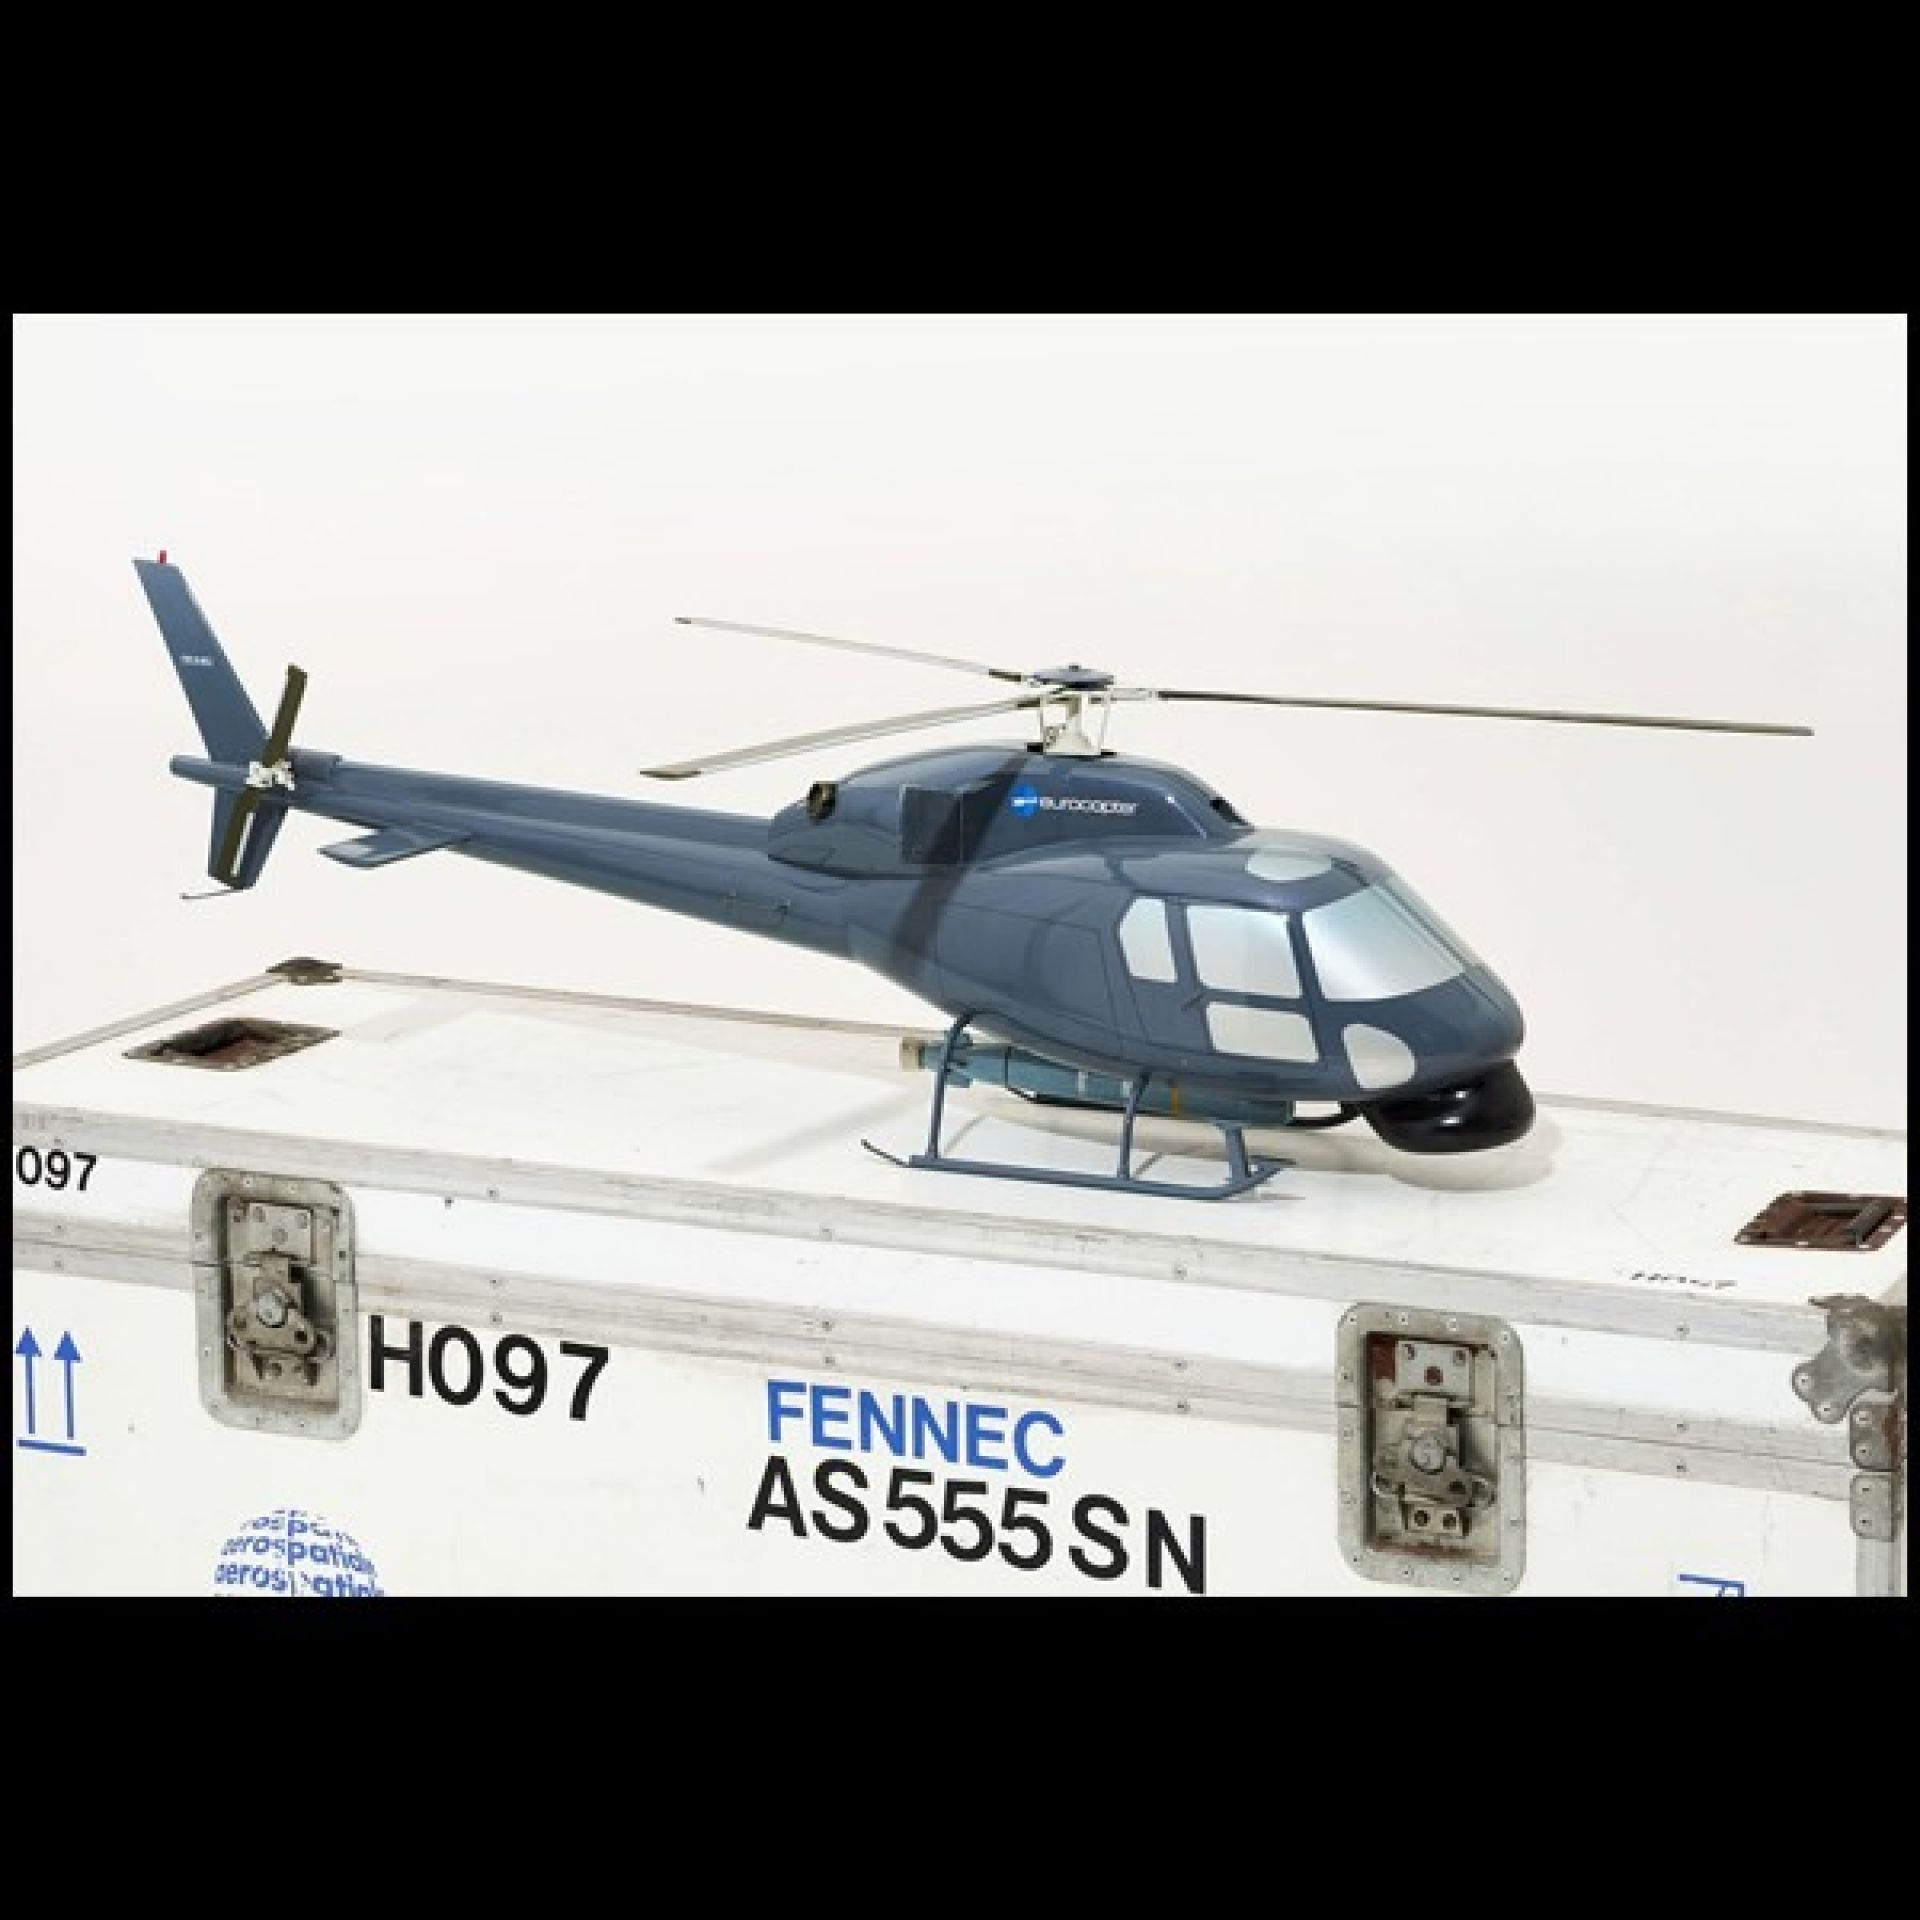 LIGHT HELICOPTER MODEL AS555 FENNEC PC-FENNEC HELICOPTER